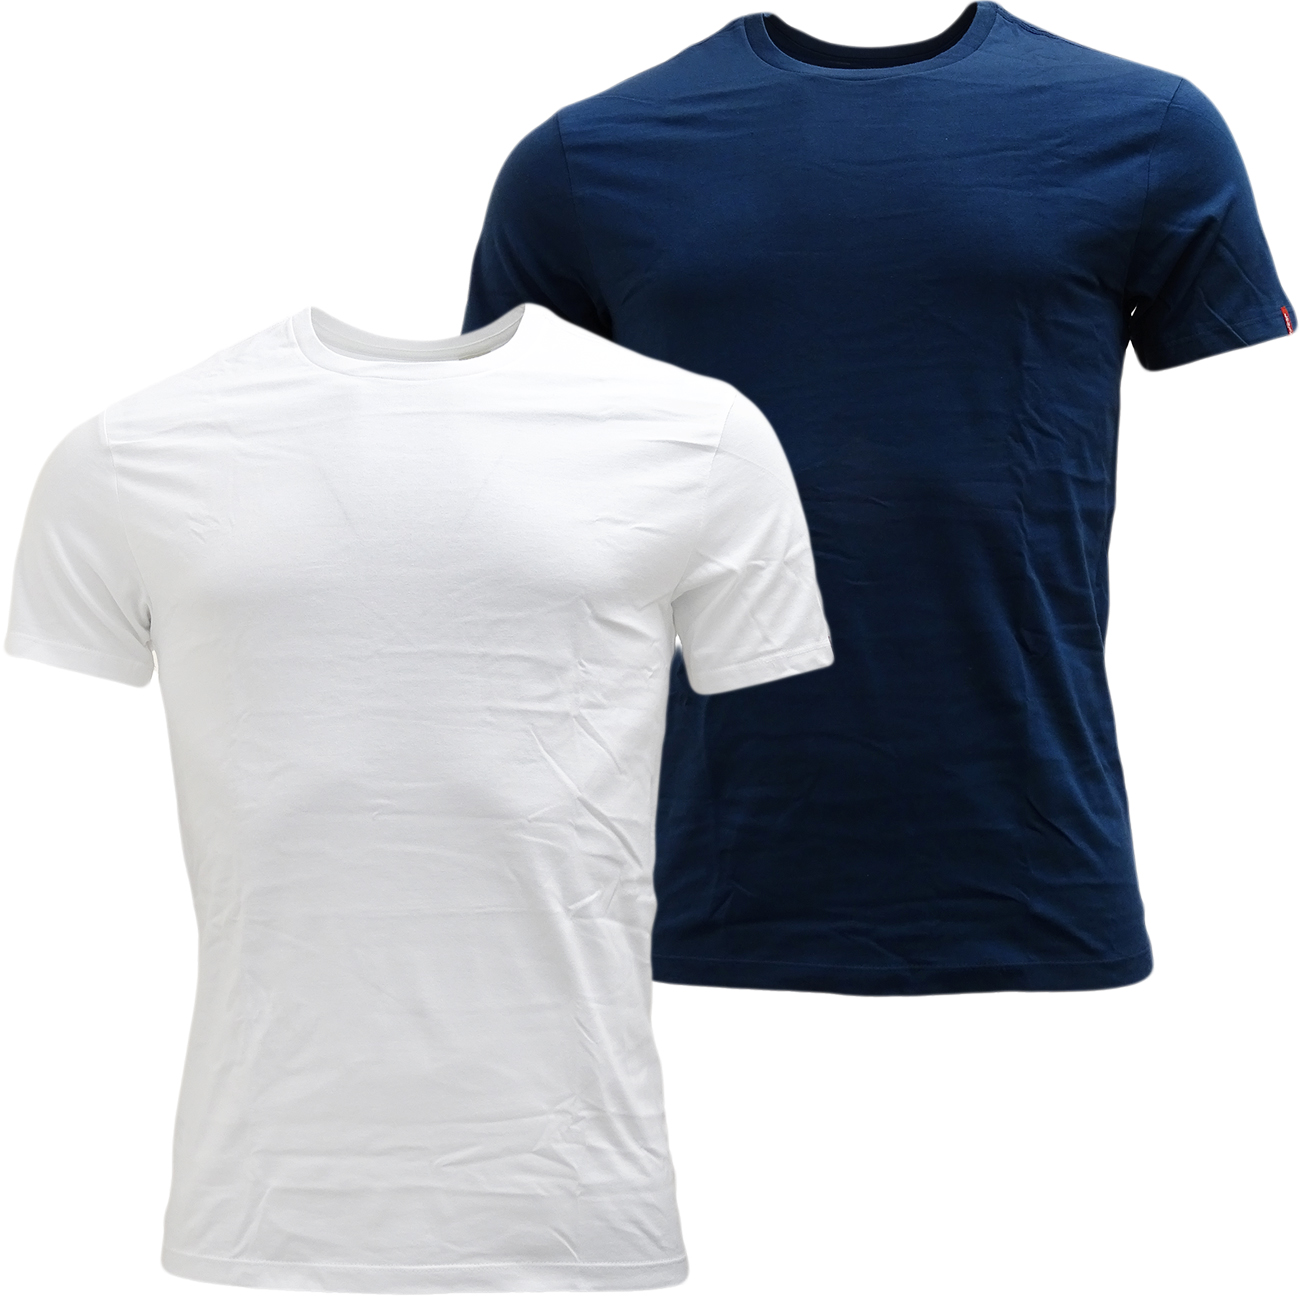 Find great deals on eBay for 1/2 compression shirt. Shop with confidence.